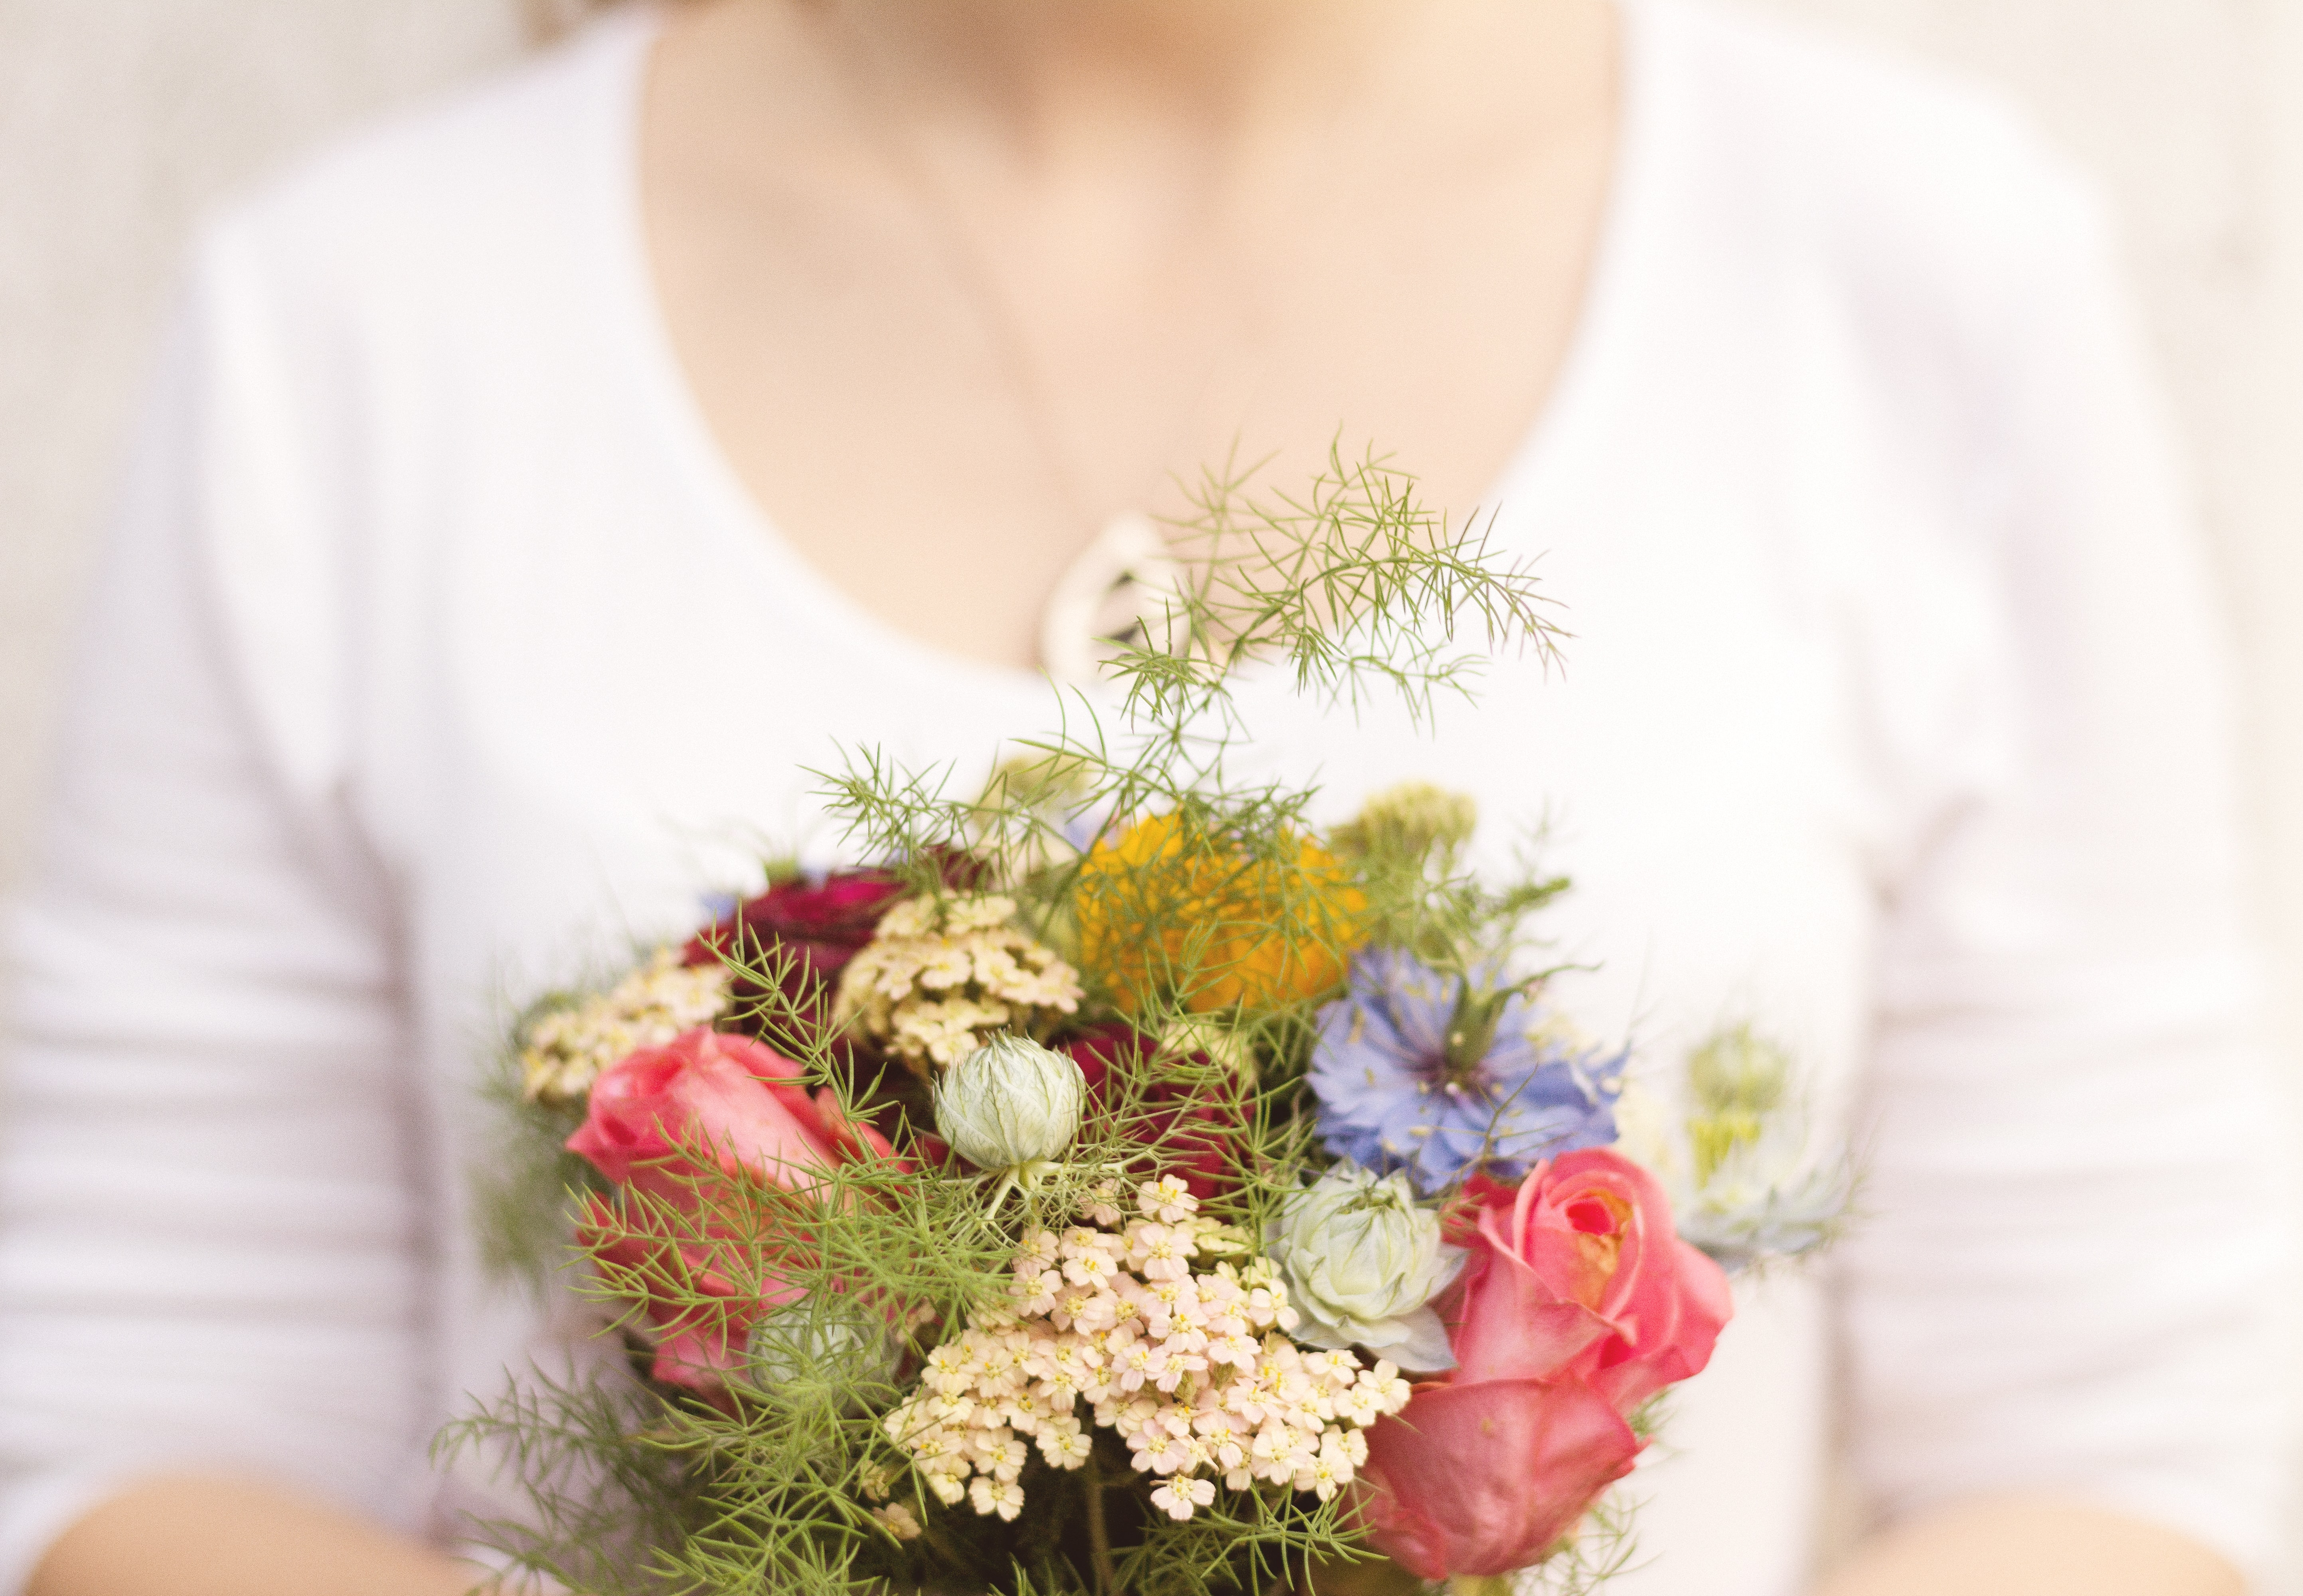 A woman holding a modest bouquet with various flowers